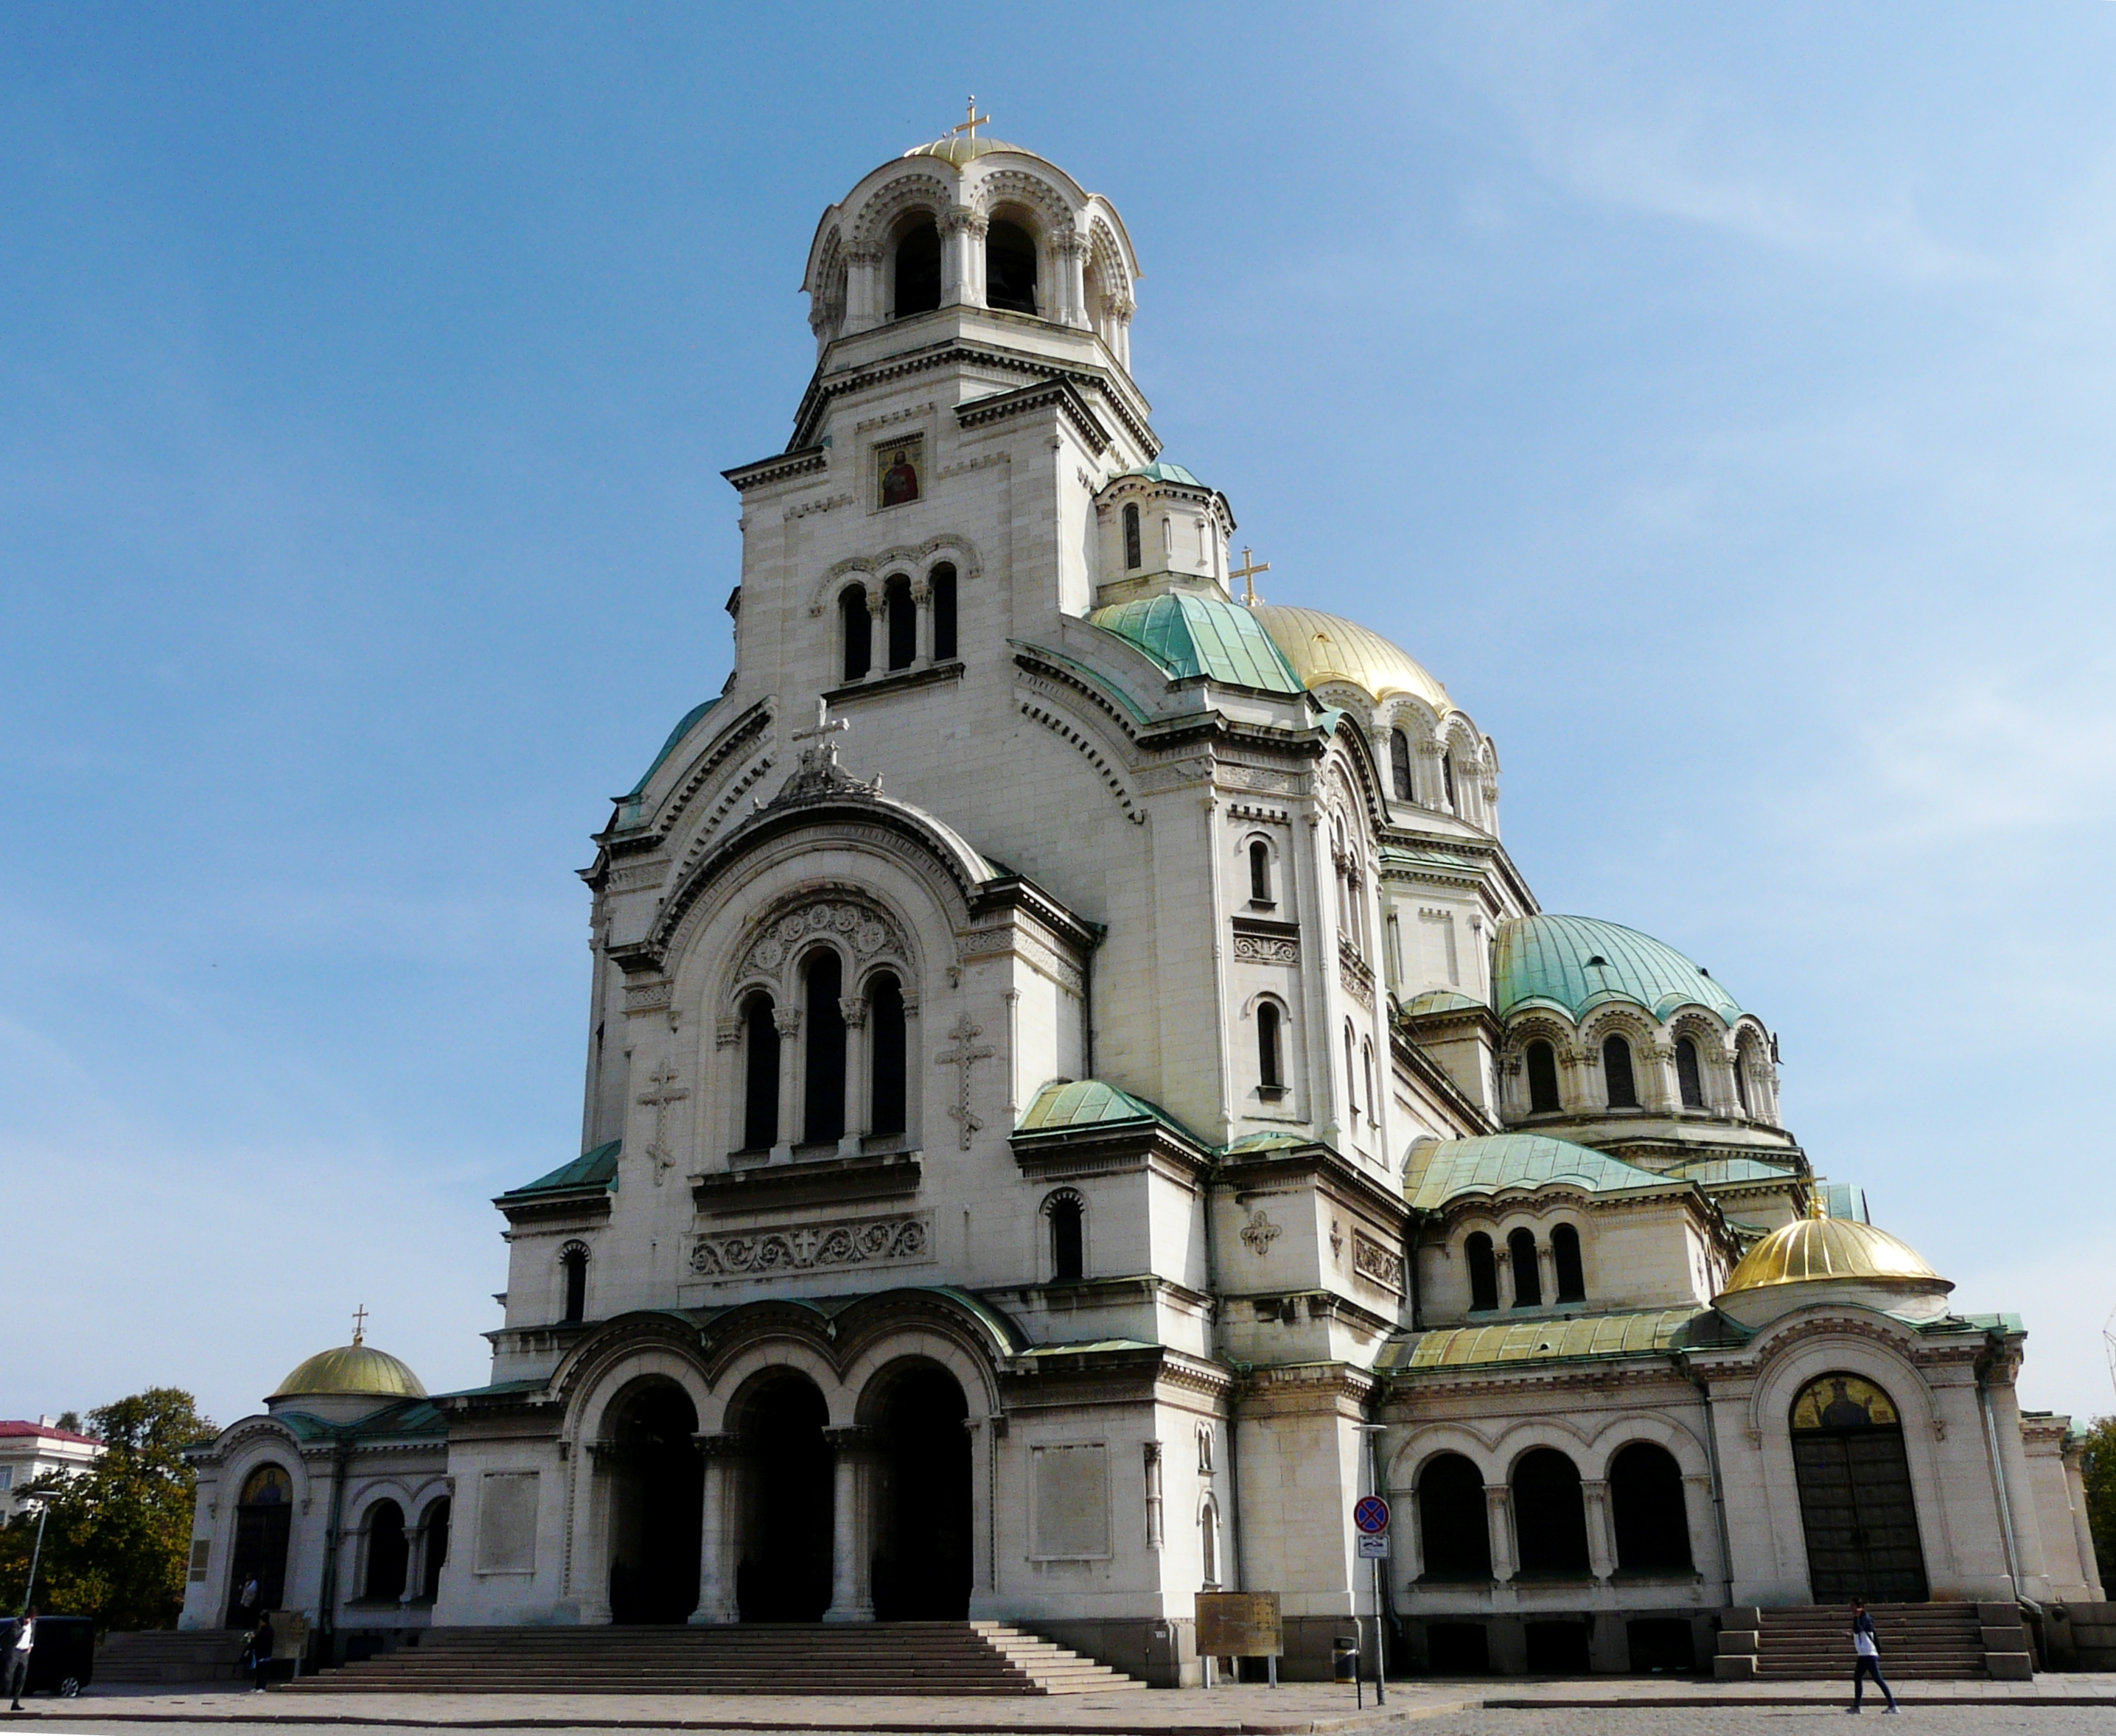 Alexander Nevsky Cathedral in Sofia is the massive landmark Orthodox church in the Balkans.